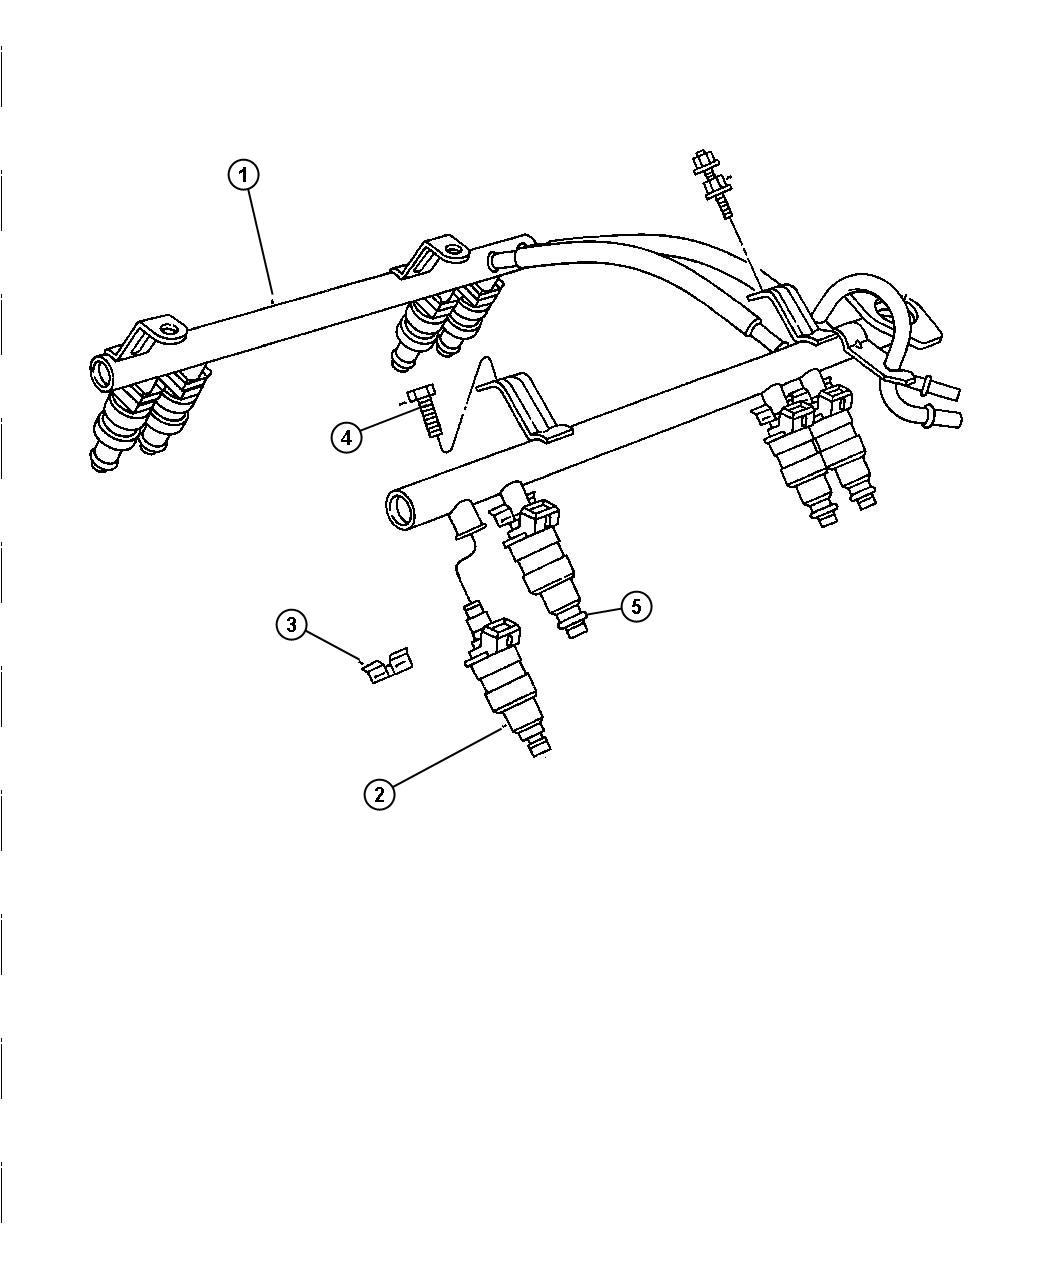 Chrysler Pt Cruiser Injector Fuel Up To 7 07 03